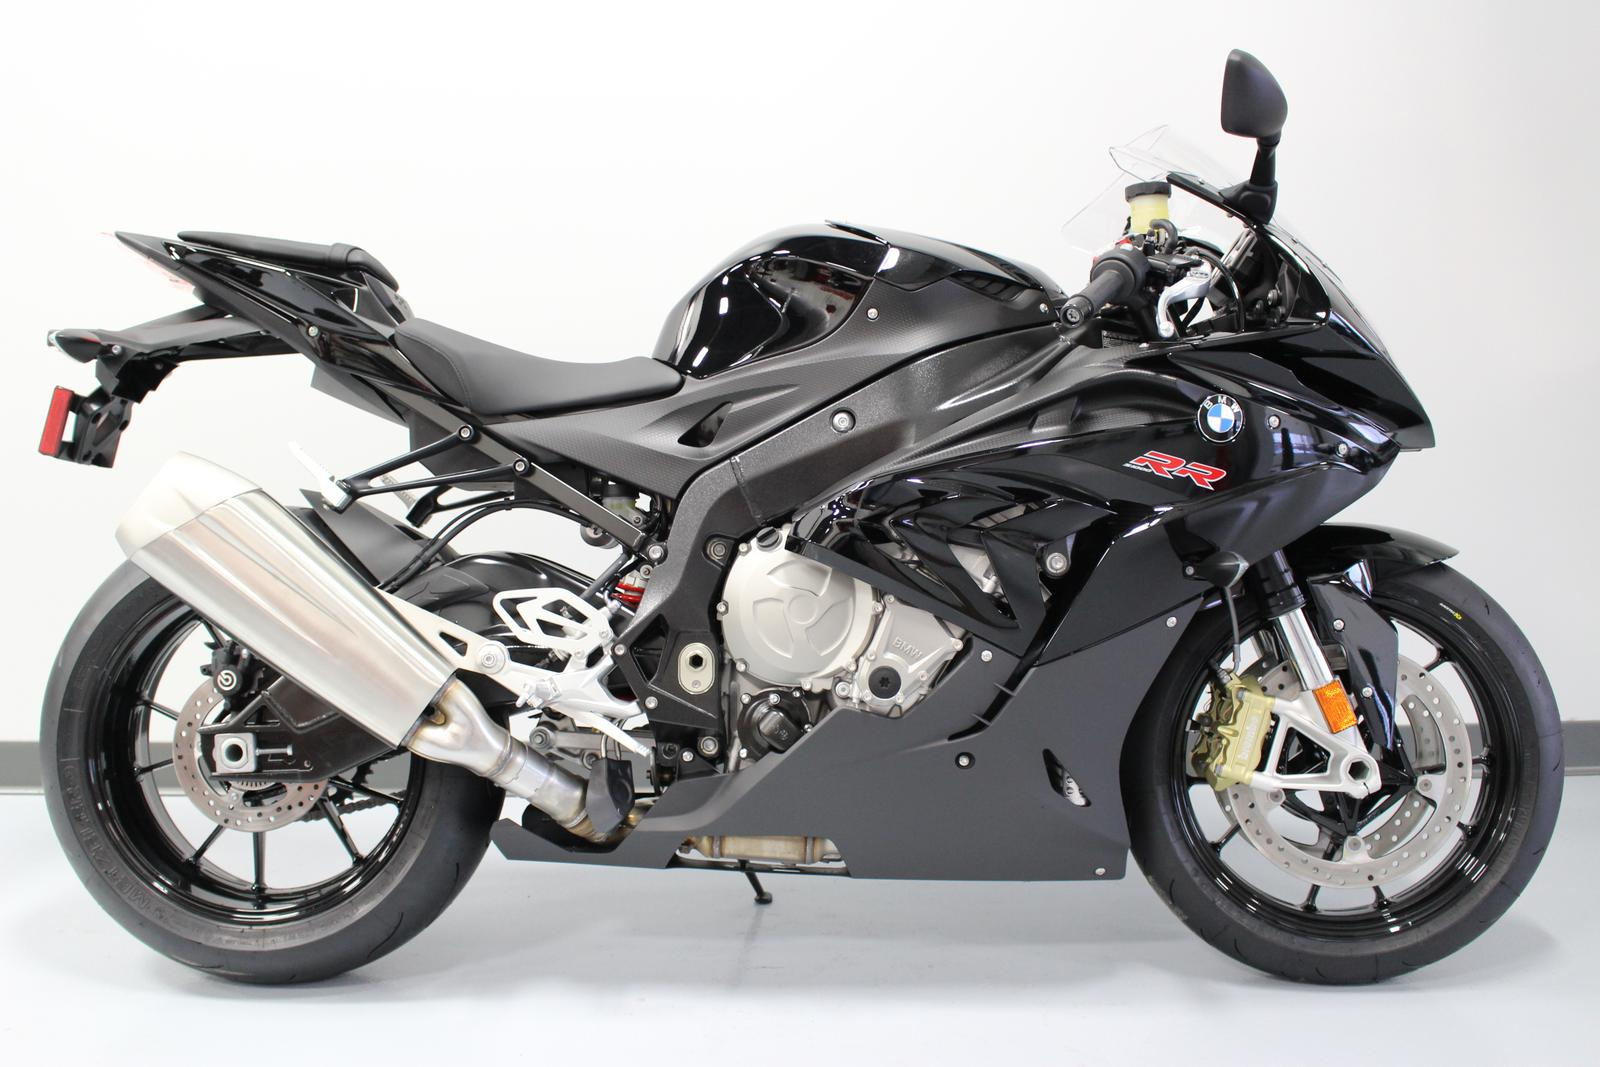 2014 BMW S 1000 RR Sportbike Motorcycle From roswell, GA